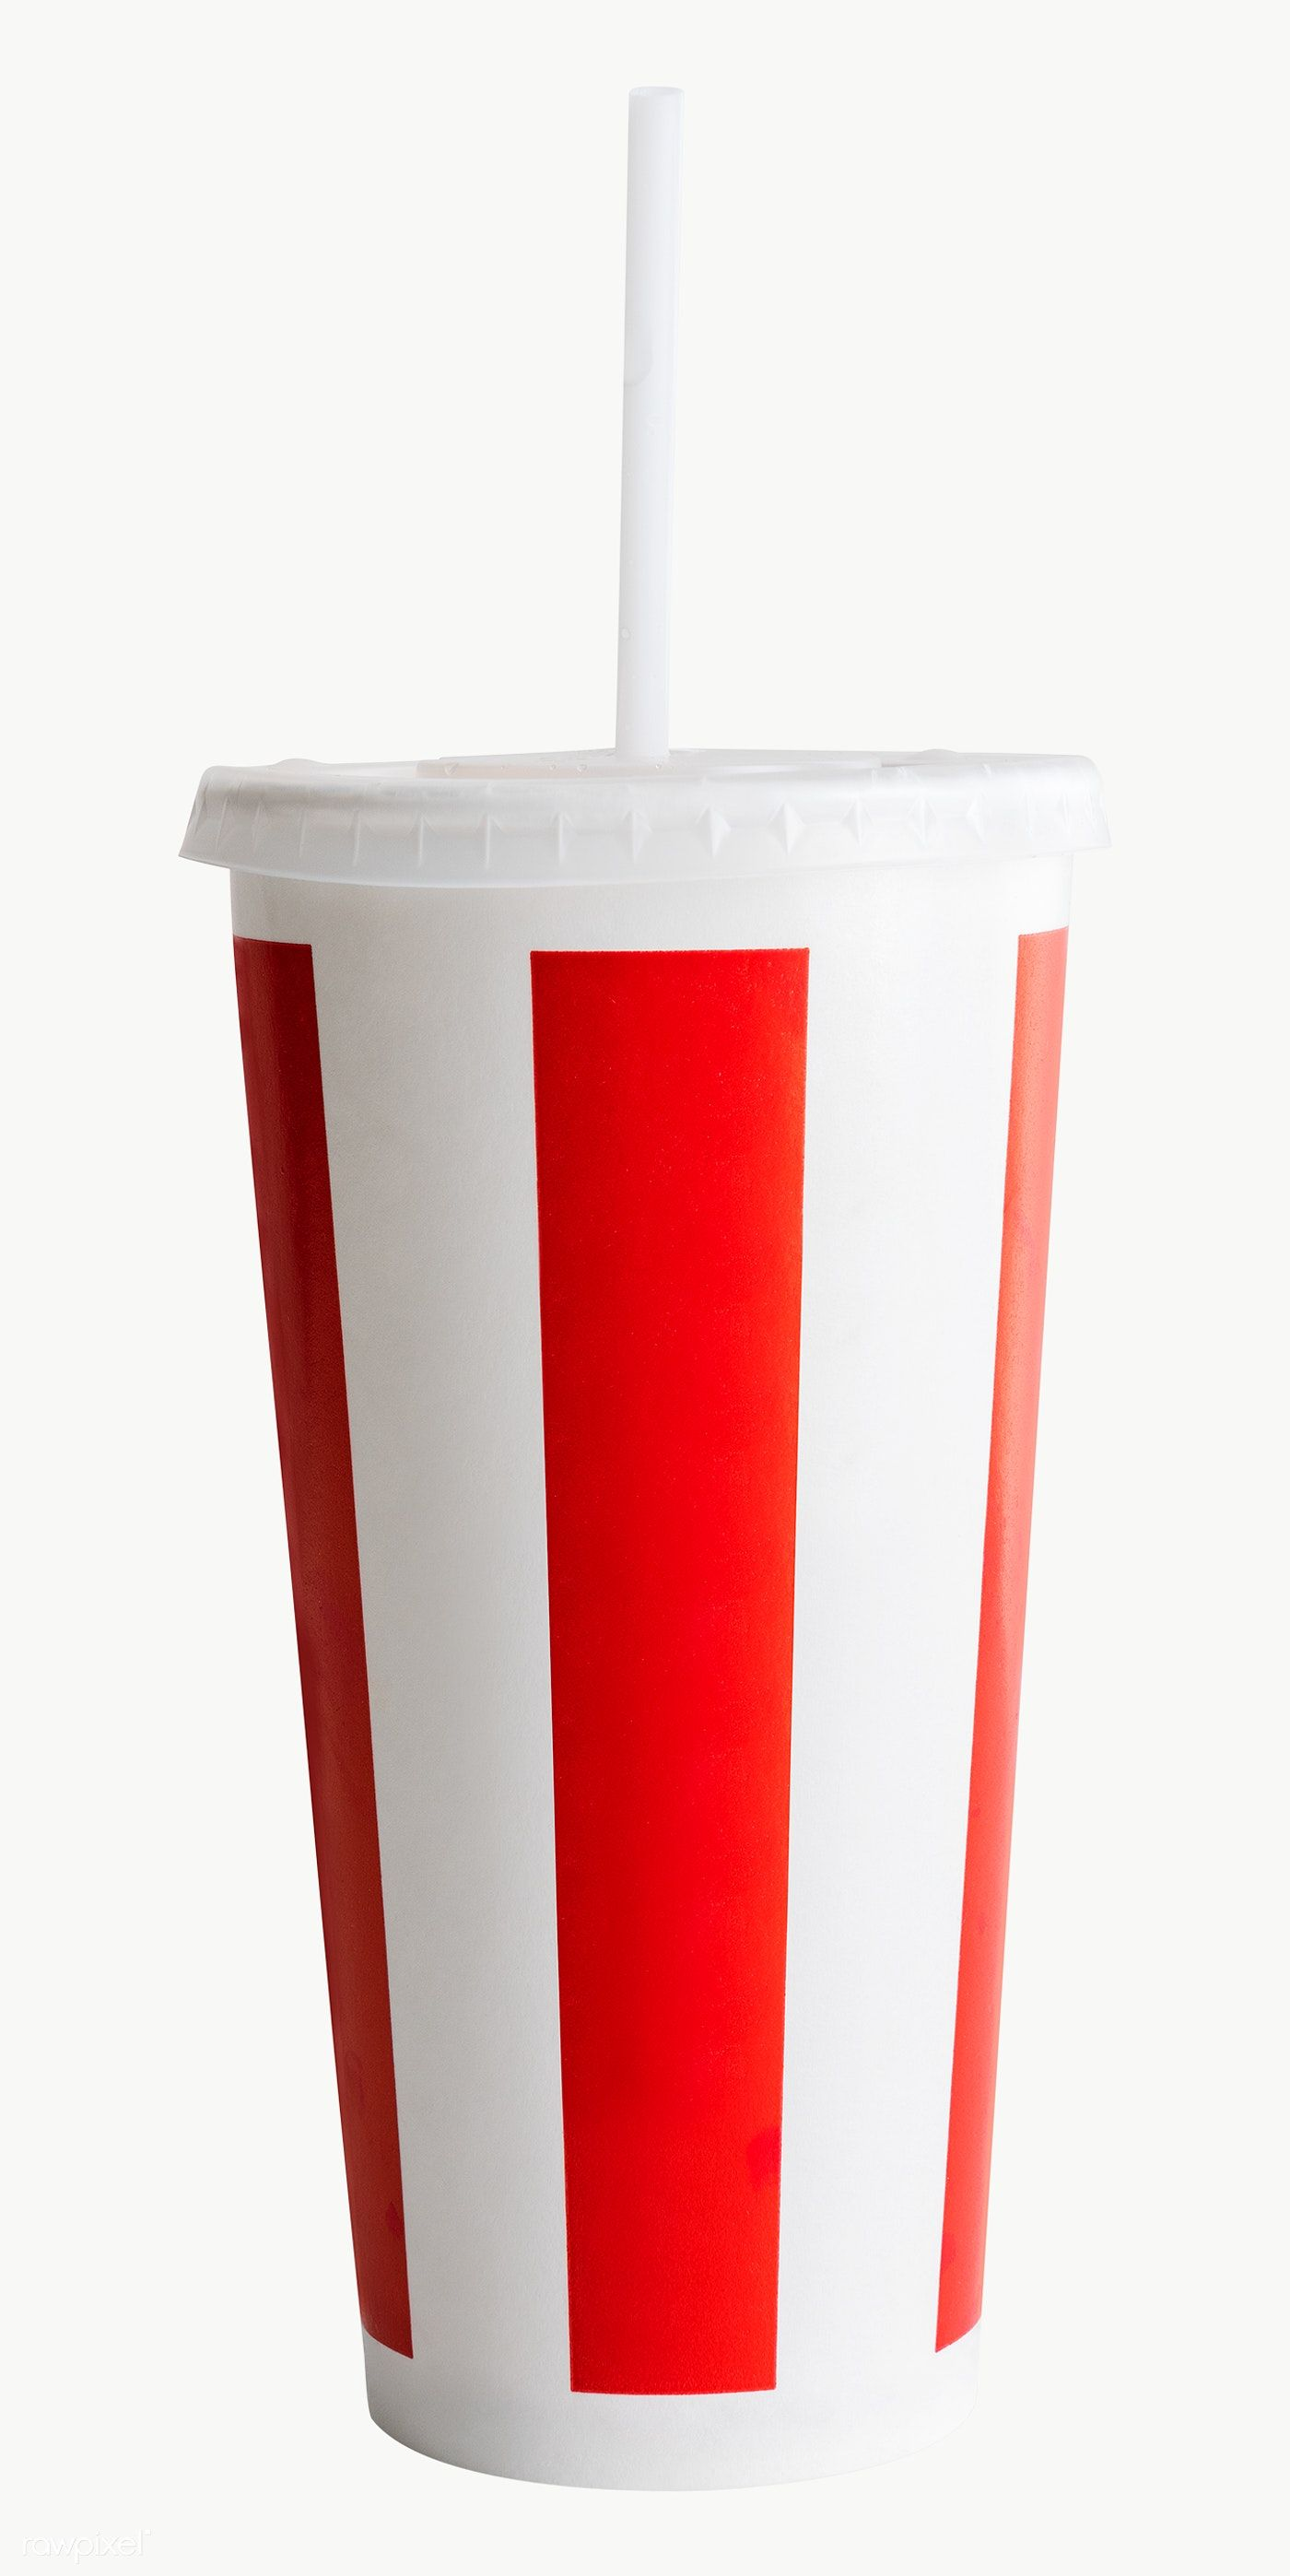 Red And White Striped Disposable Soft Drink Cup Free Image By Rawpixel Com Teddy Rawpixel Drinking Cup Red And White Stripes Soft Drinks